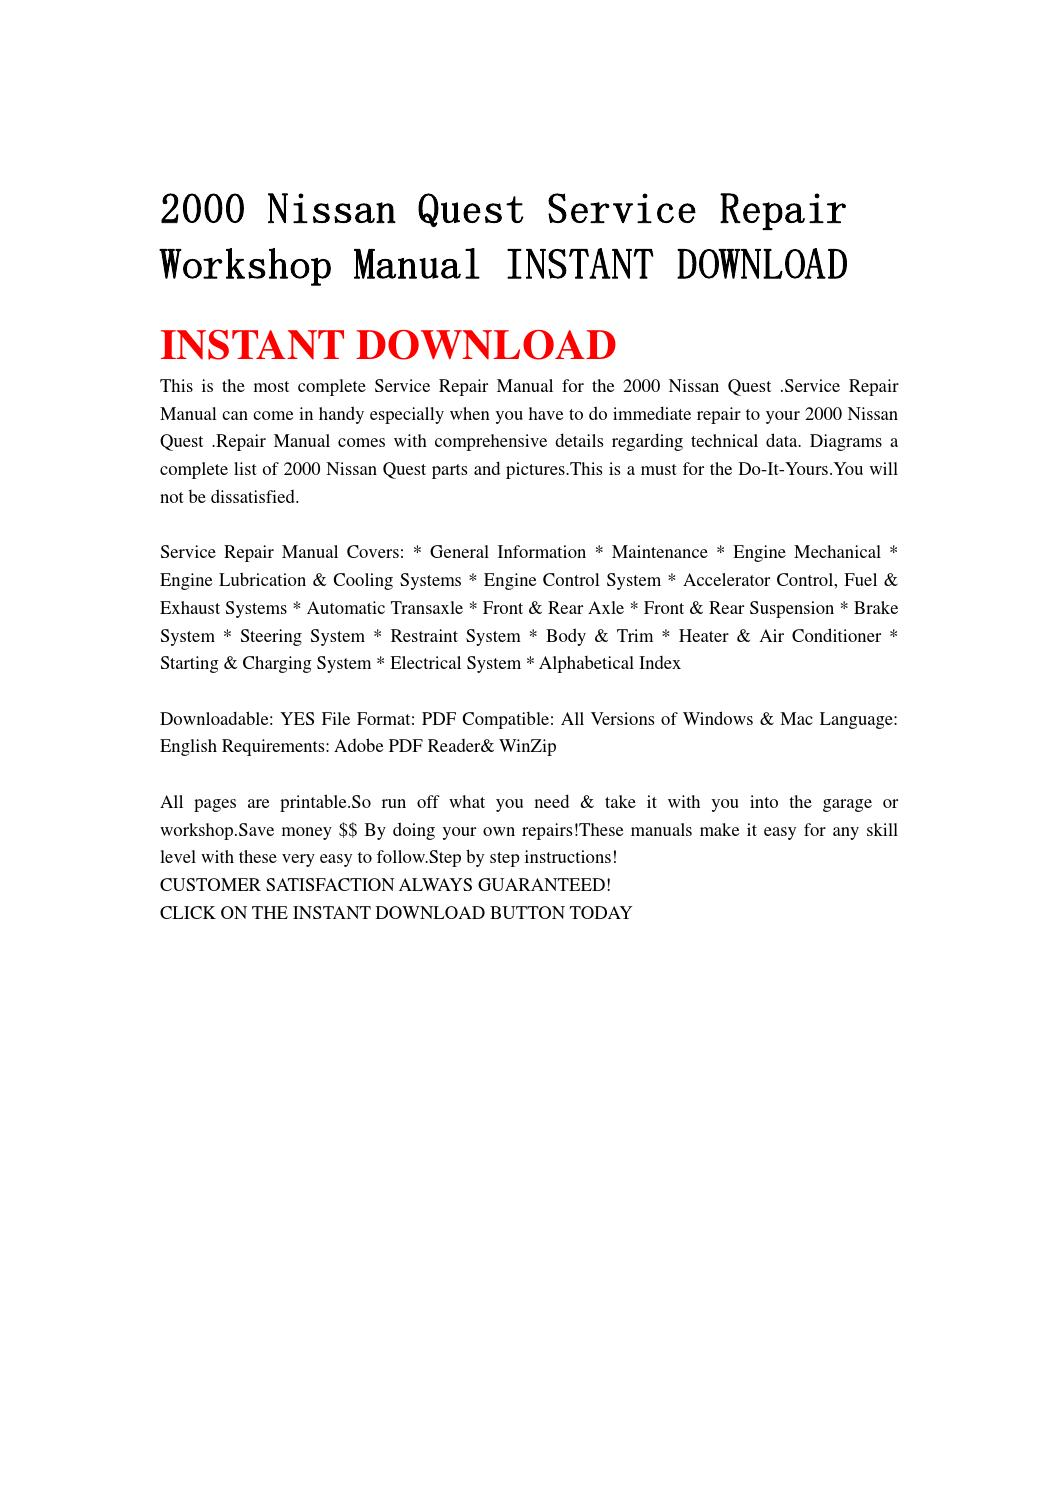 2000 nissan quest service repair workshop manual instant download by  hfgsbefhnsebb - issuu